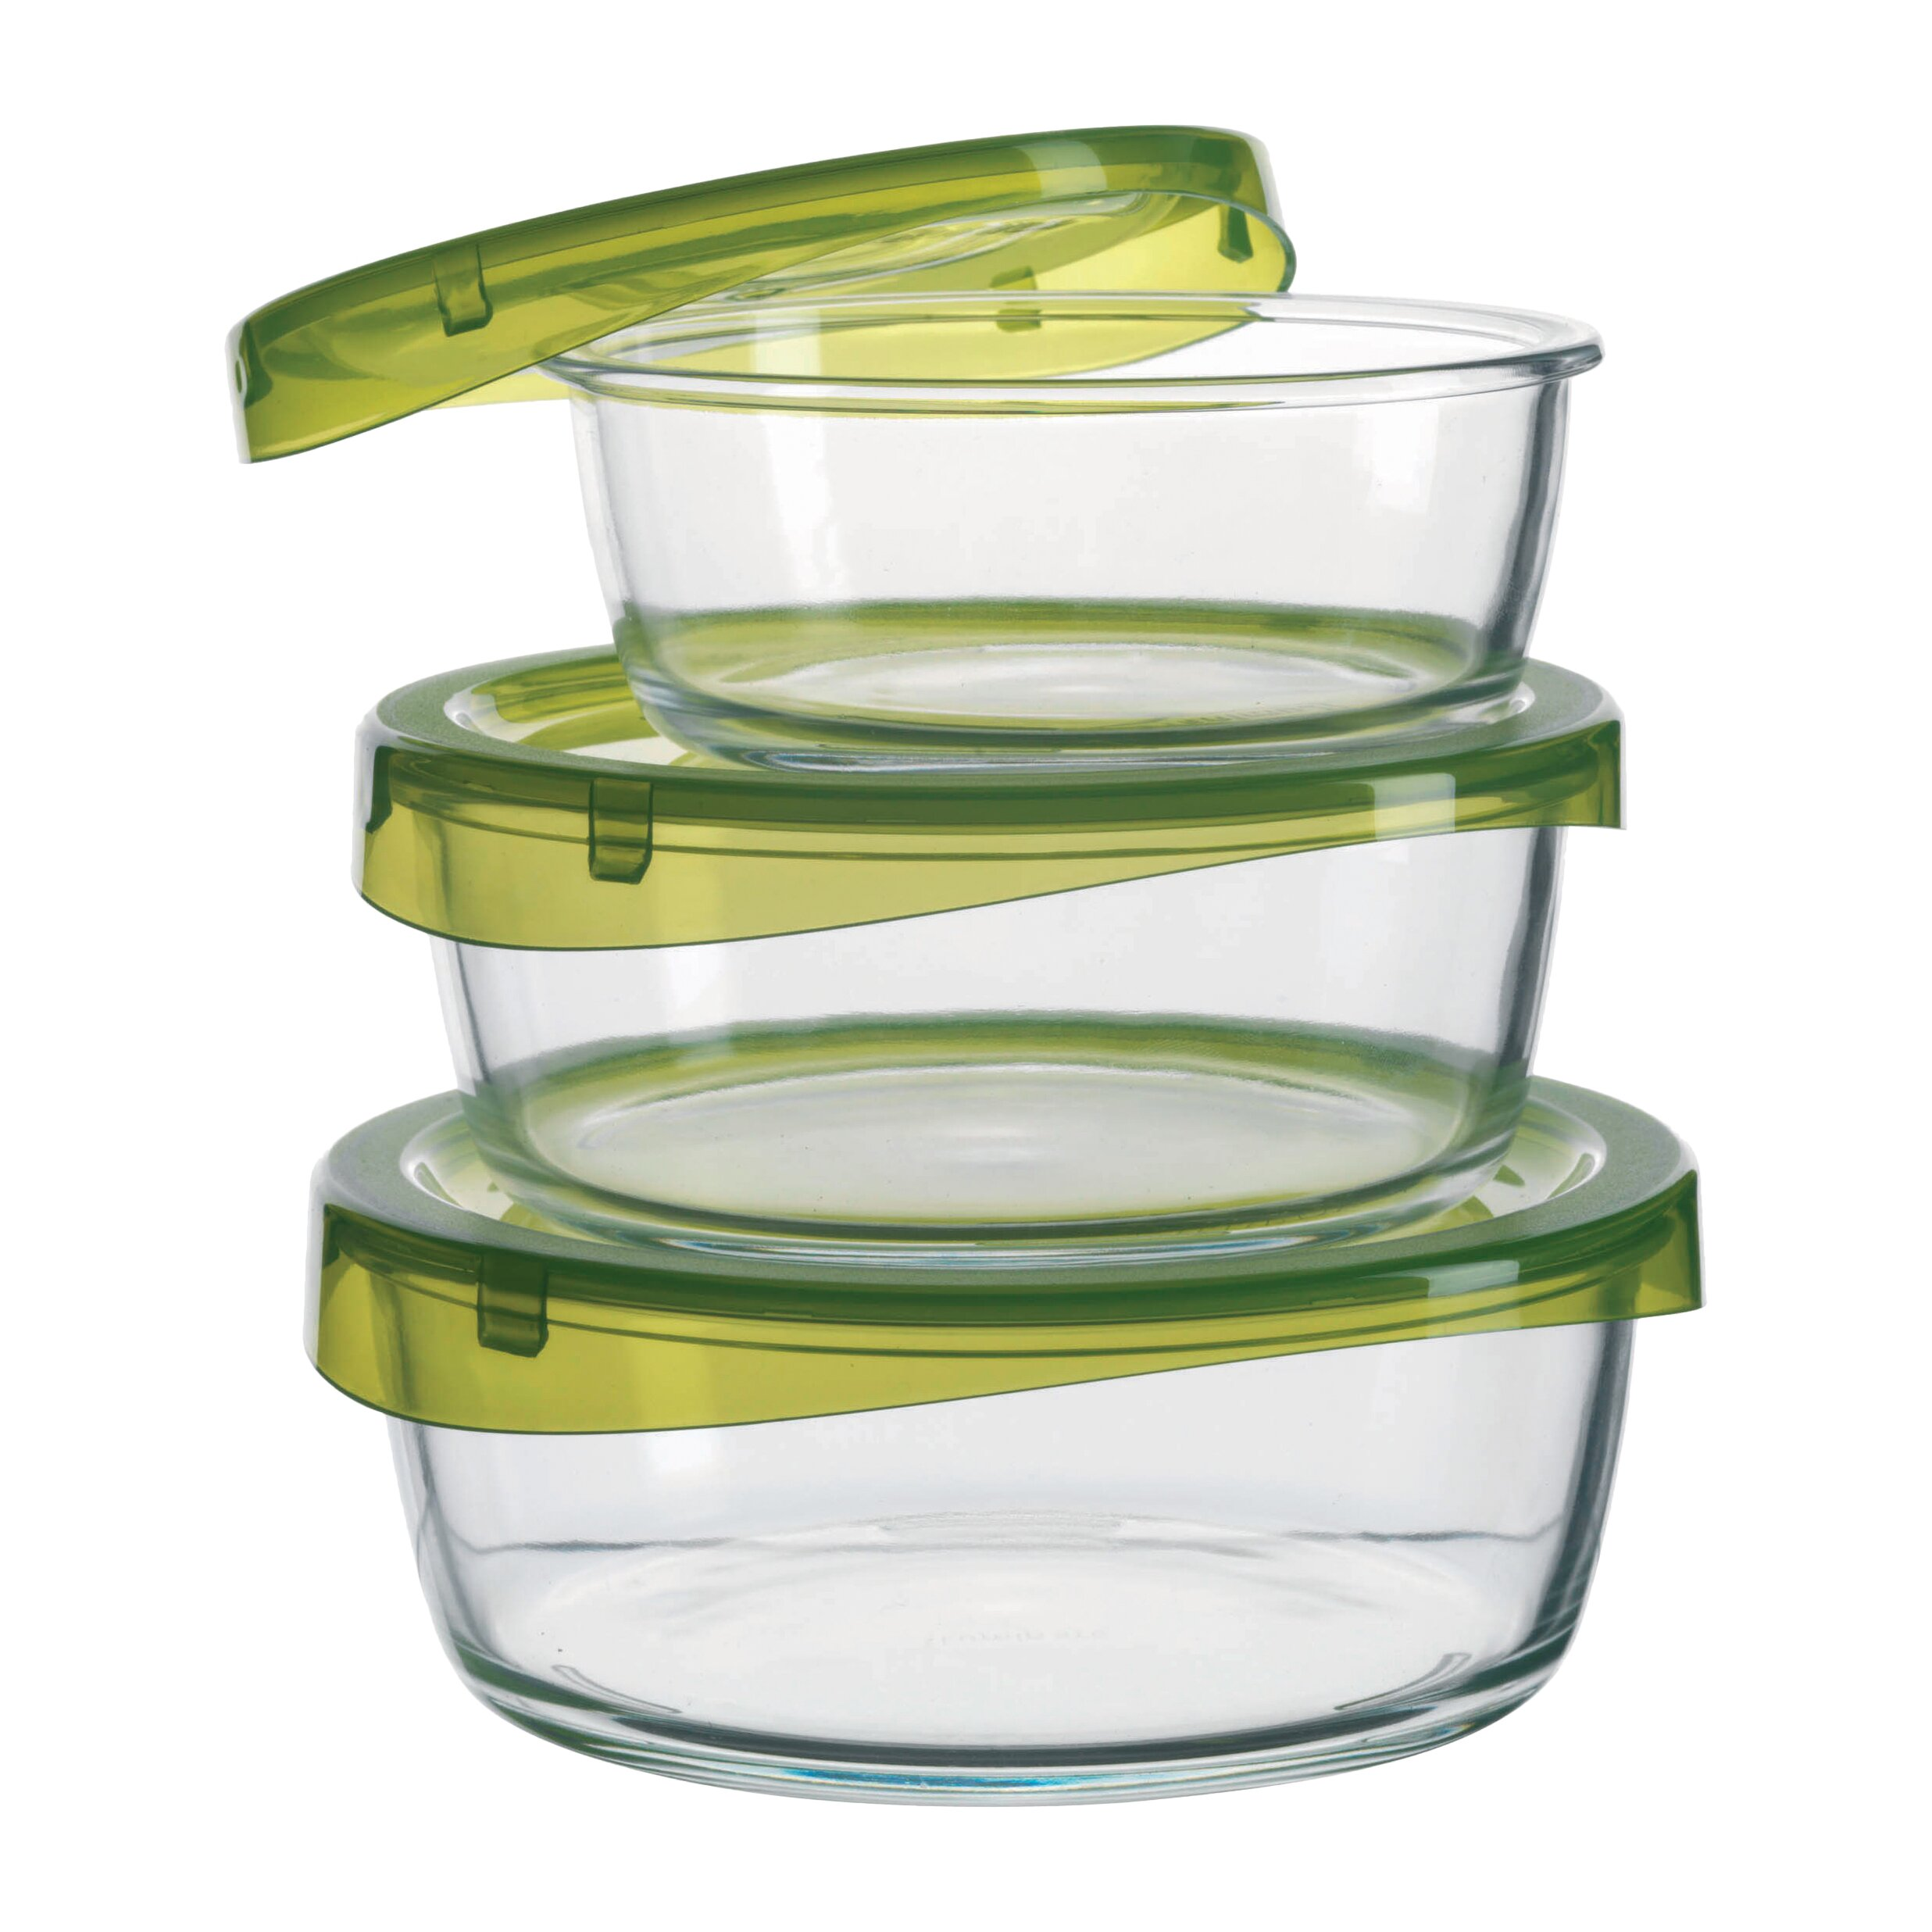 Josef m ser gmbh keep 3 piece food storage containers for 3 pieces cuisine